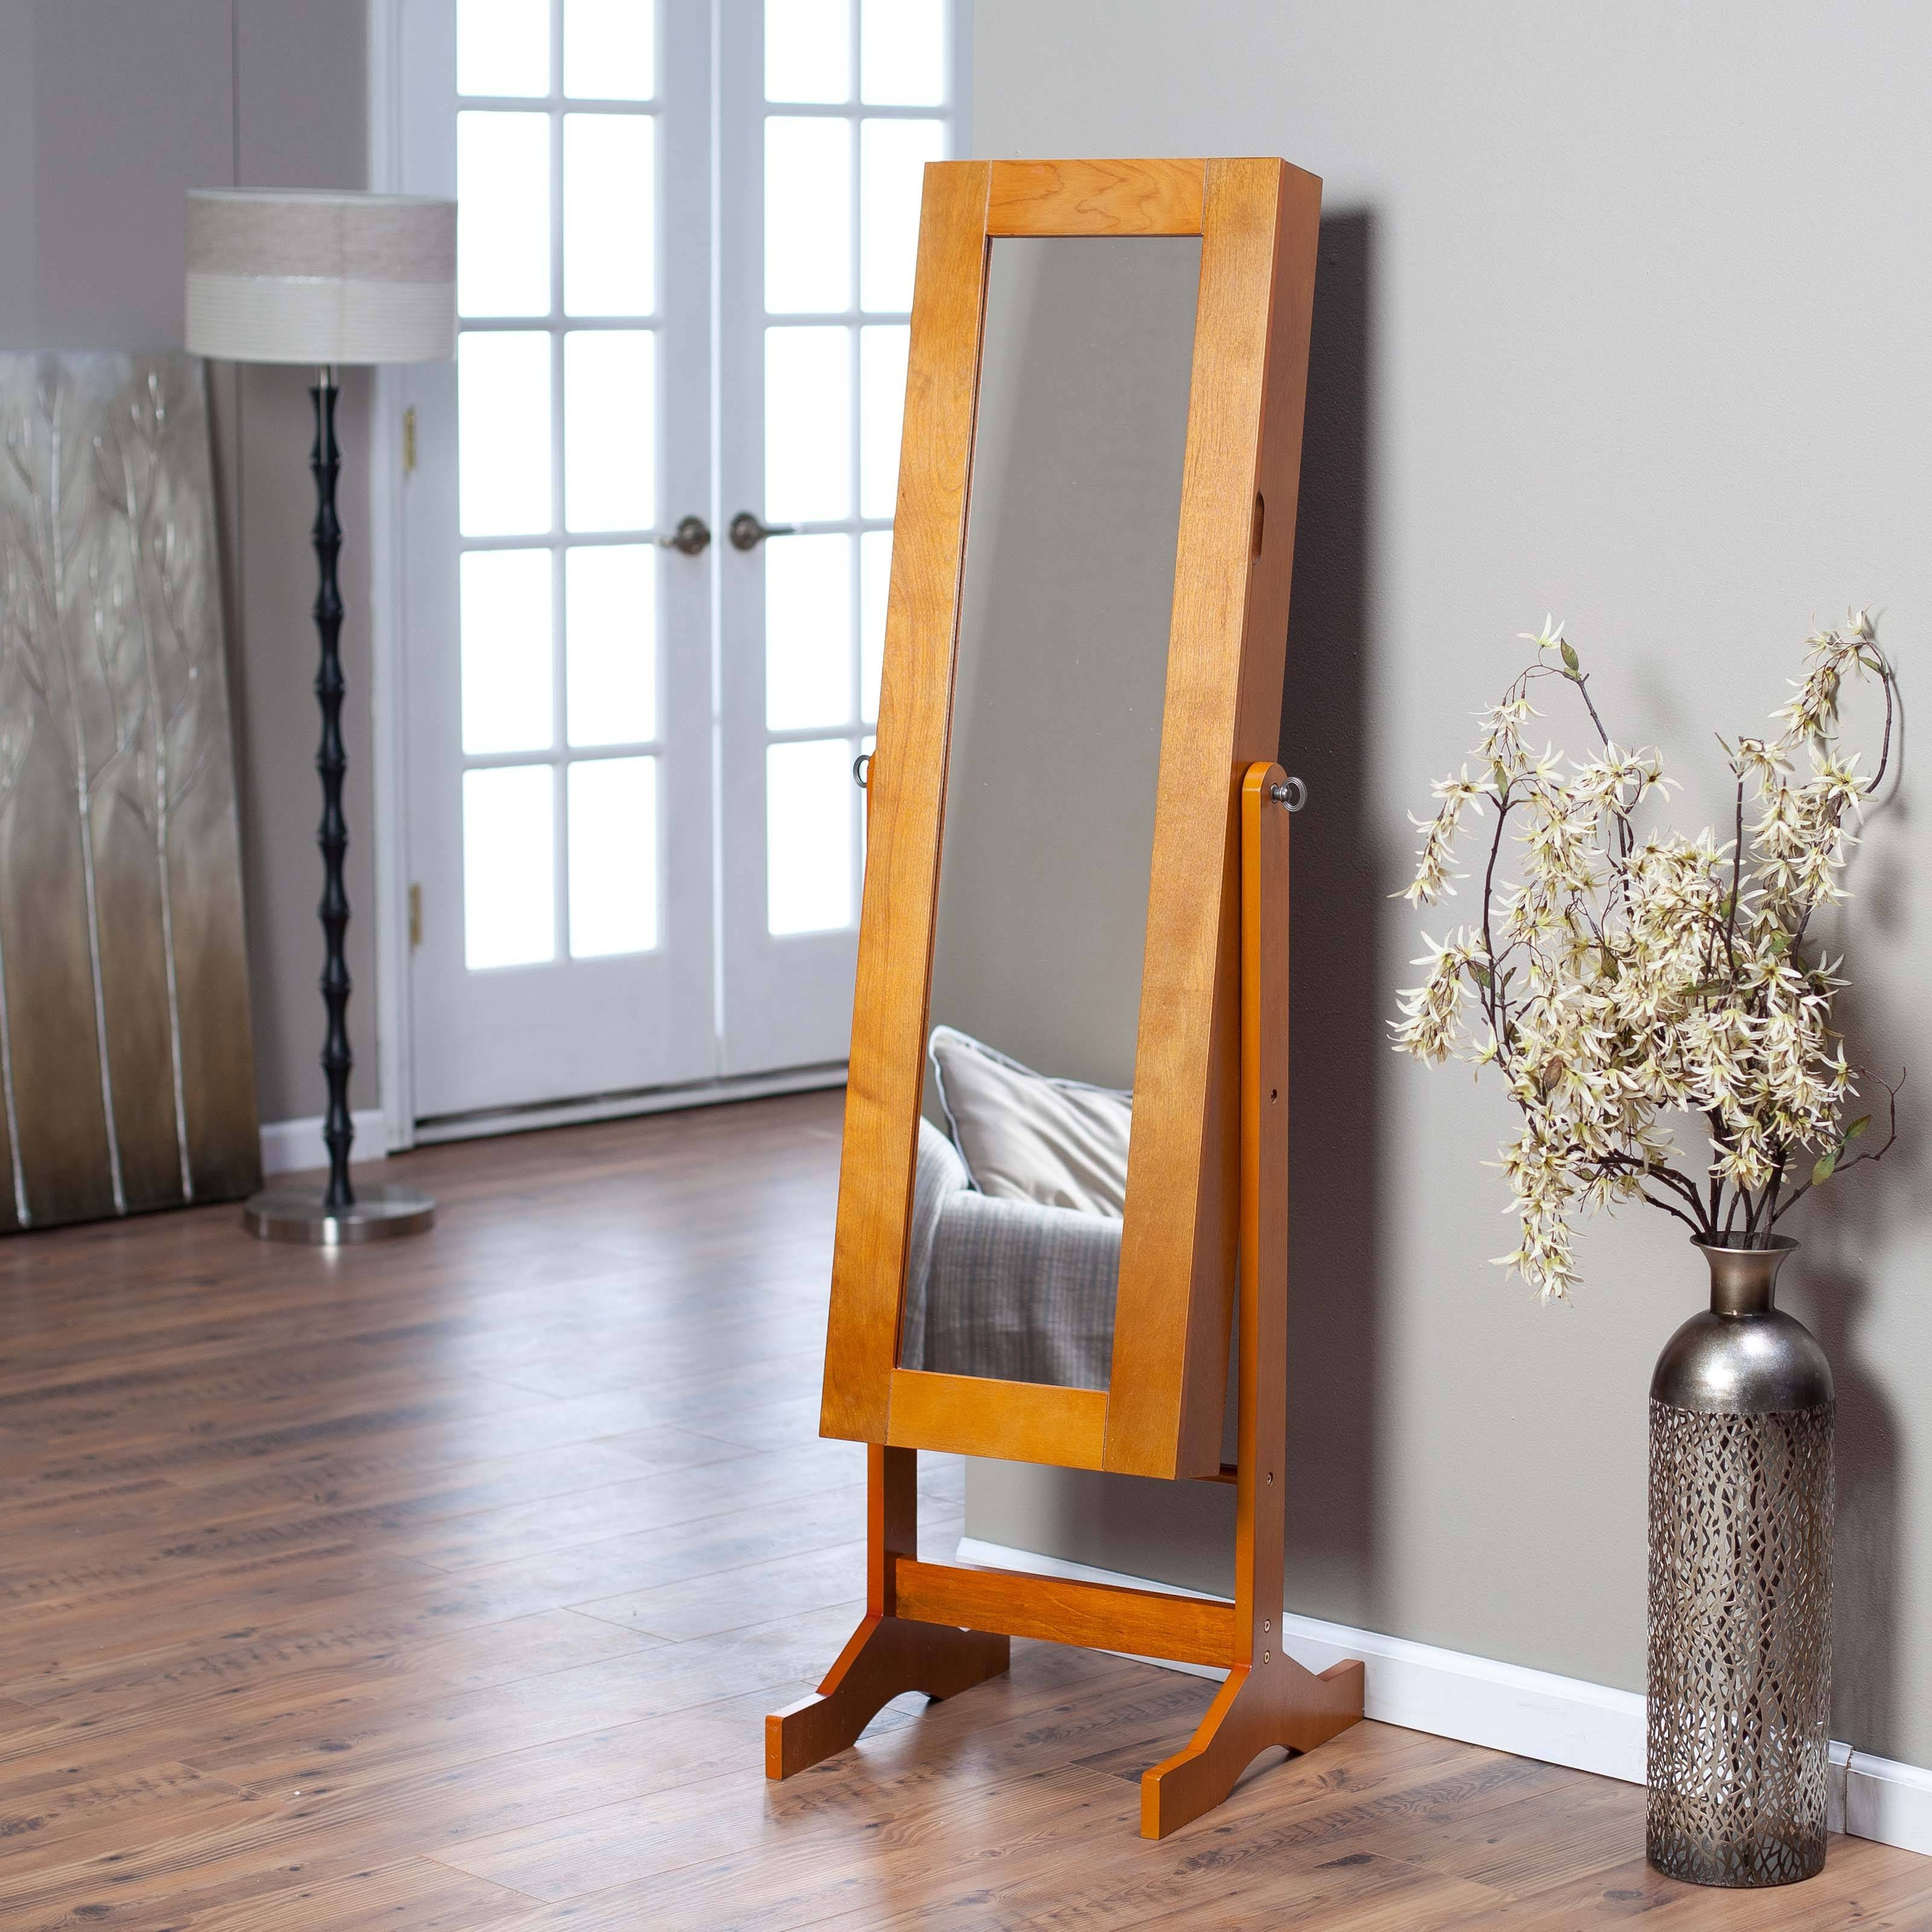 Furniture: Floors Lamp Withcheval Mirror intended for Free Standing Oak Mirrors (Image 6 of 15)